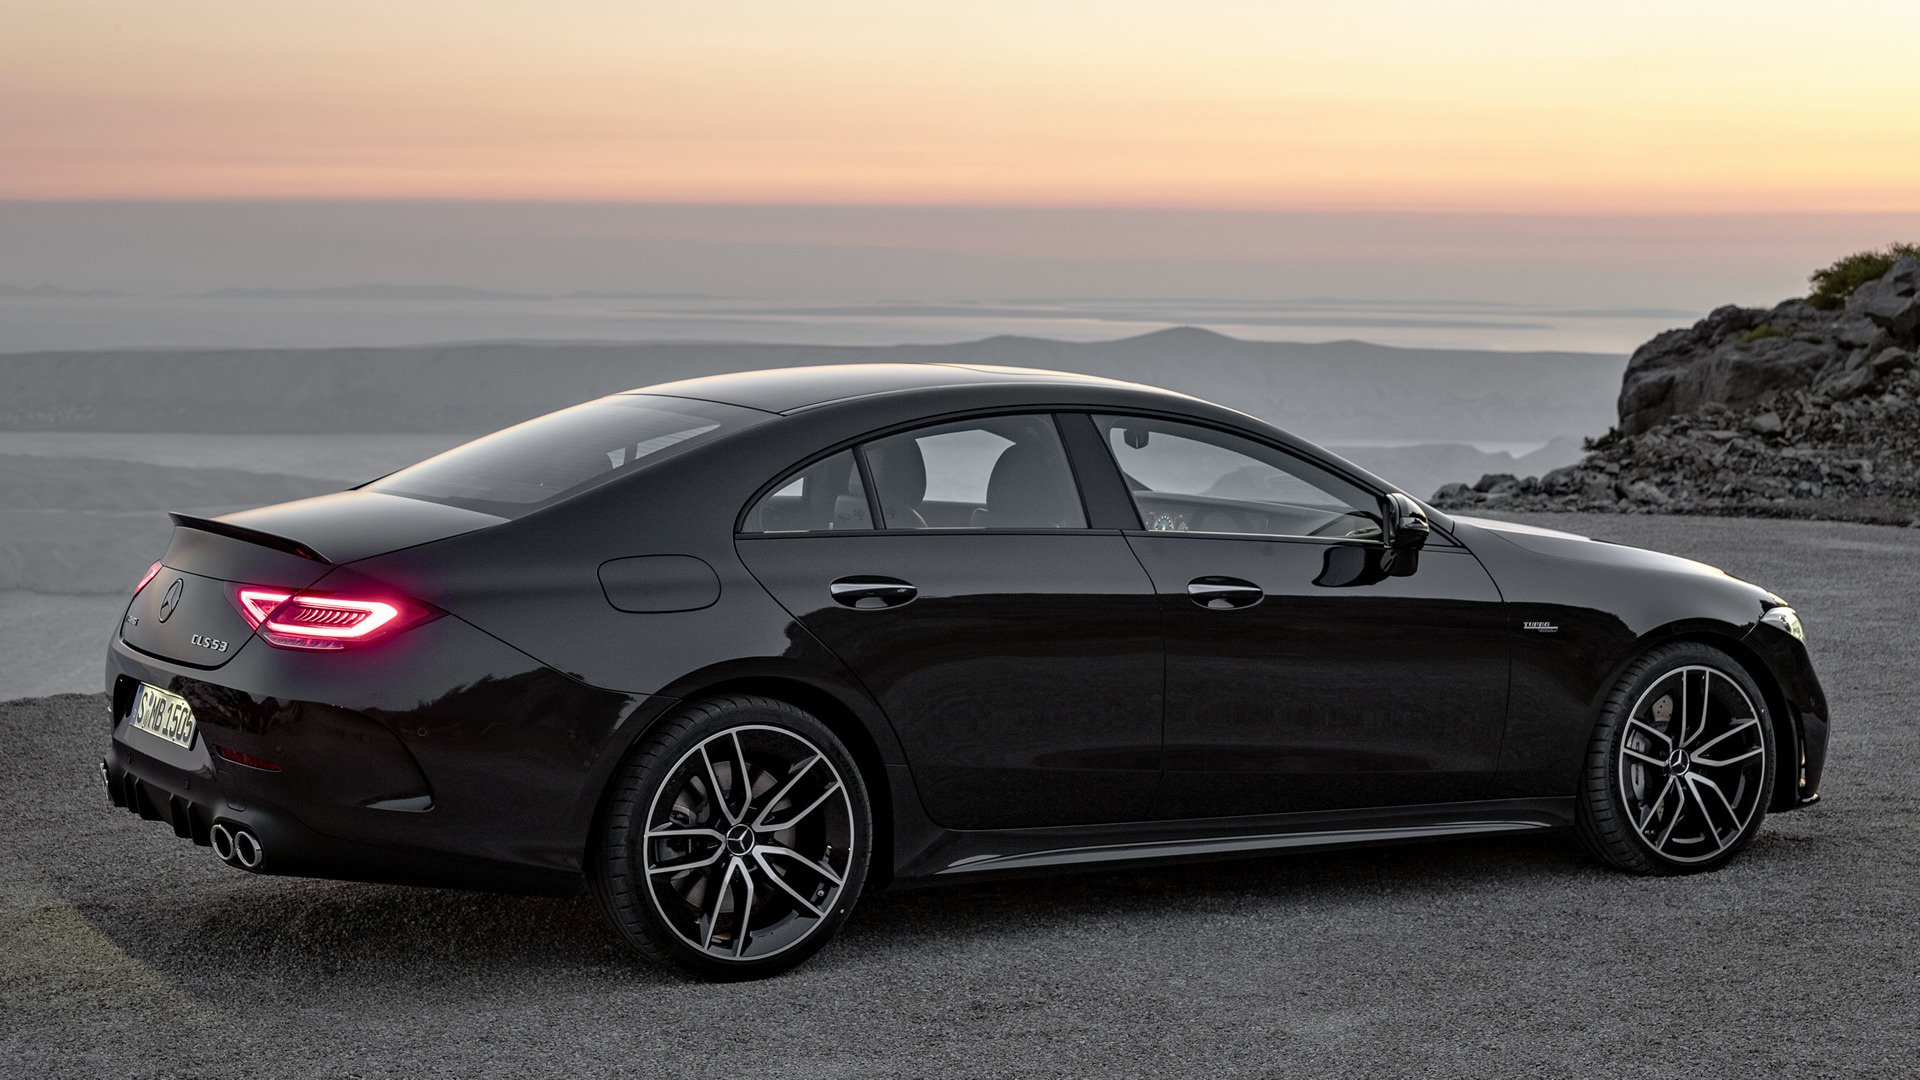 2018 Mercedes-AMG CLS 53 HD Wallpaper | Background Image ...